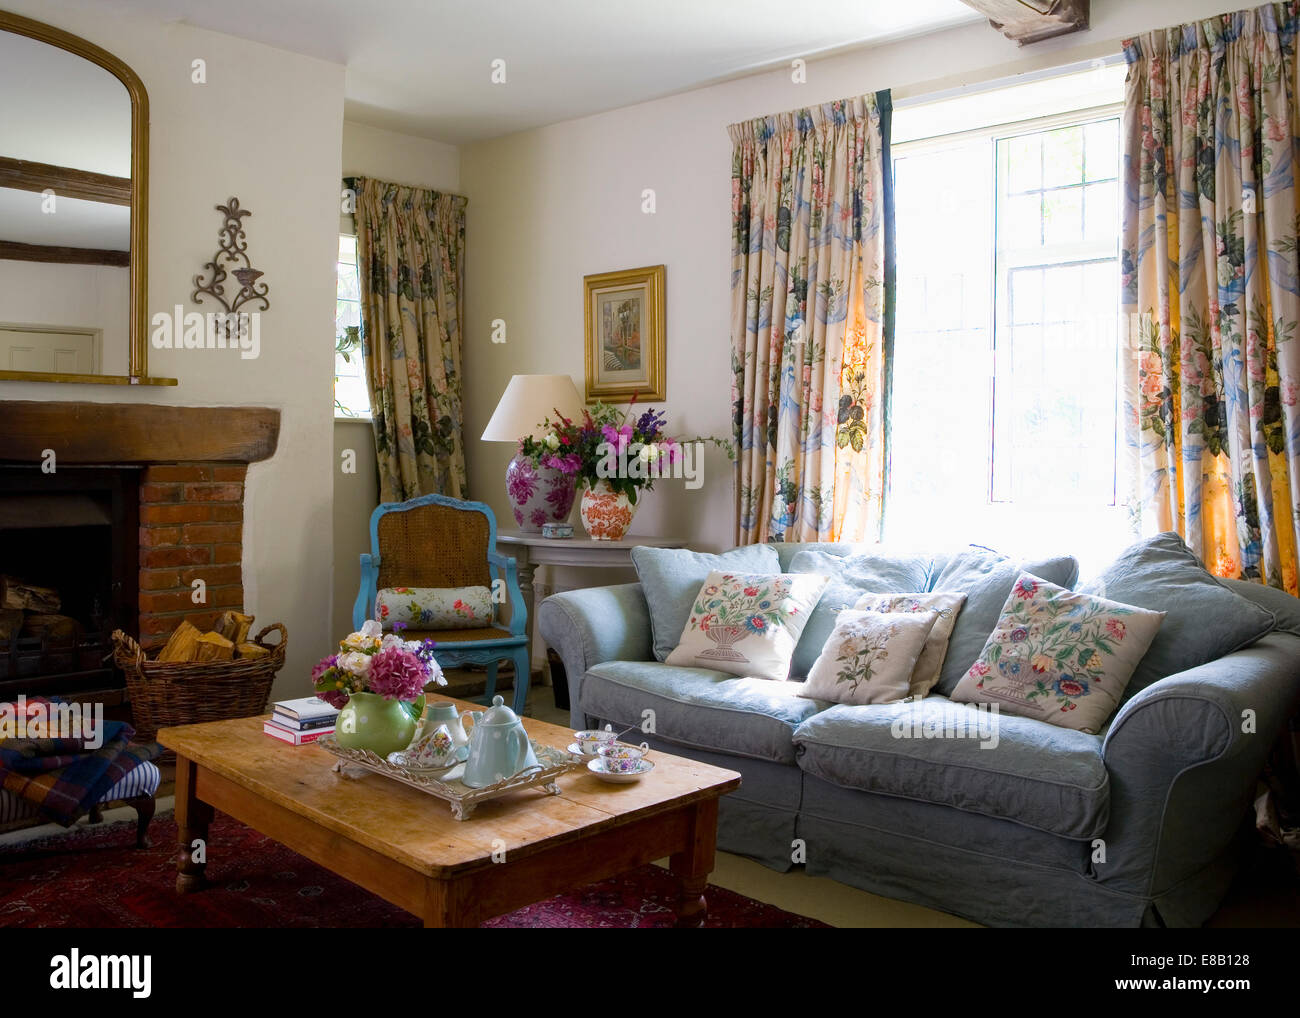 Blue Sofa In Front Of Window With Floral Curtains In Country Living